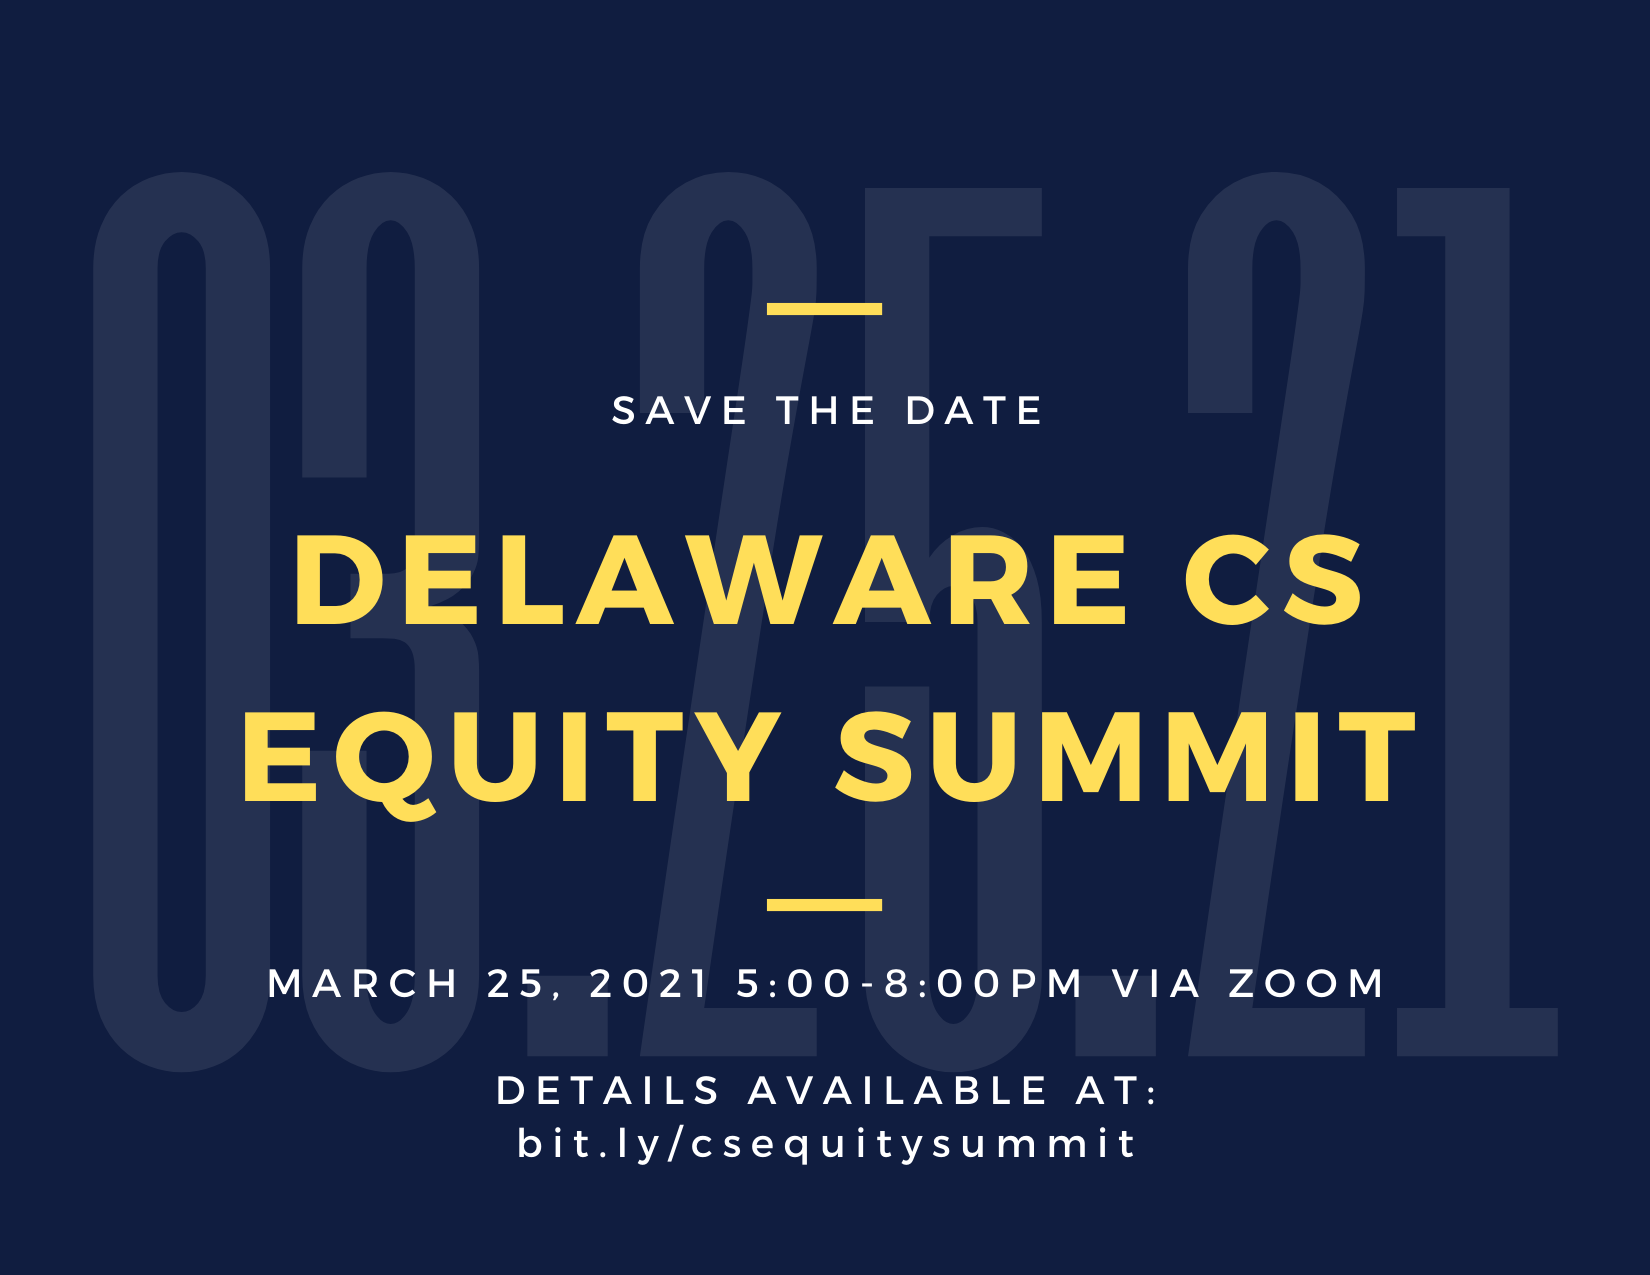 Kersch-Delaware CS Equity Summit Save The Date